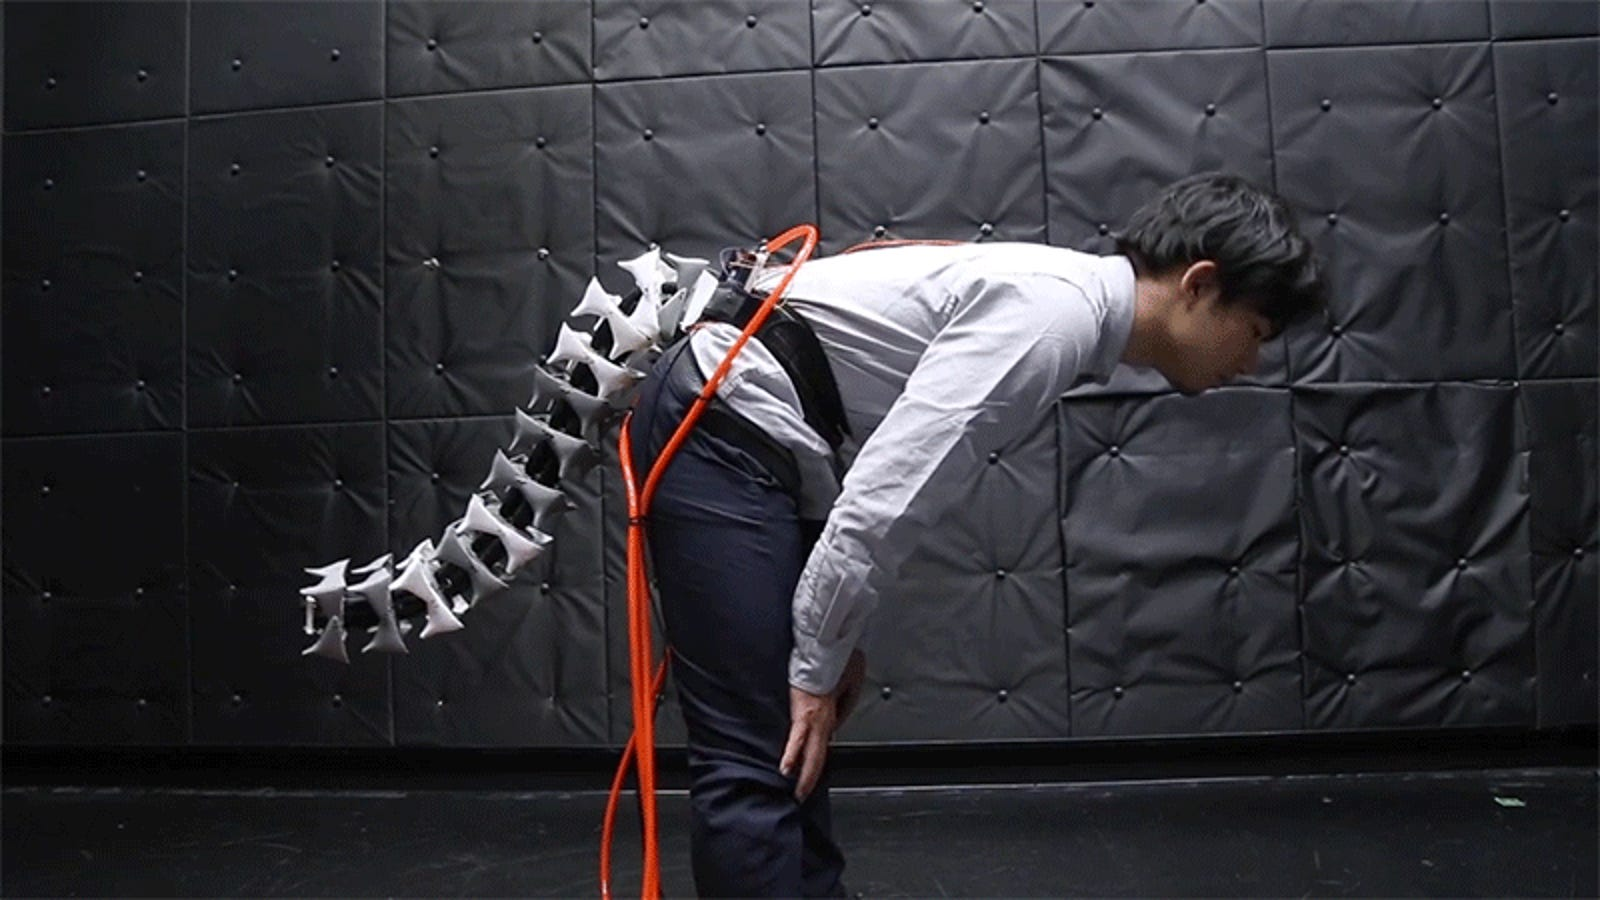 A Wearable Robotic Tail Turns Anyone Into a Furry With Improved Balance